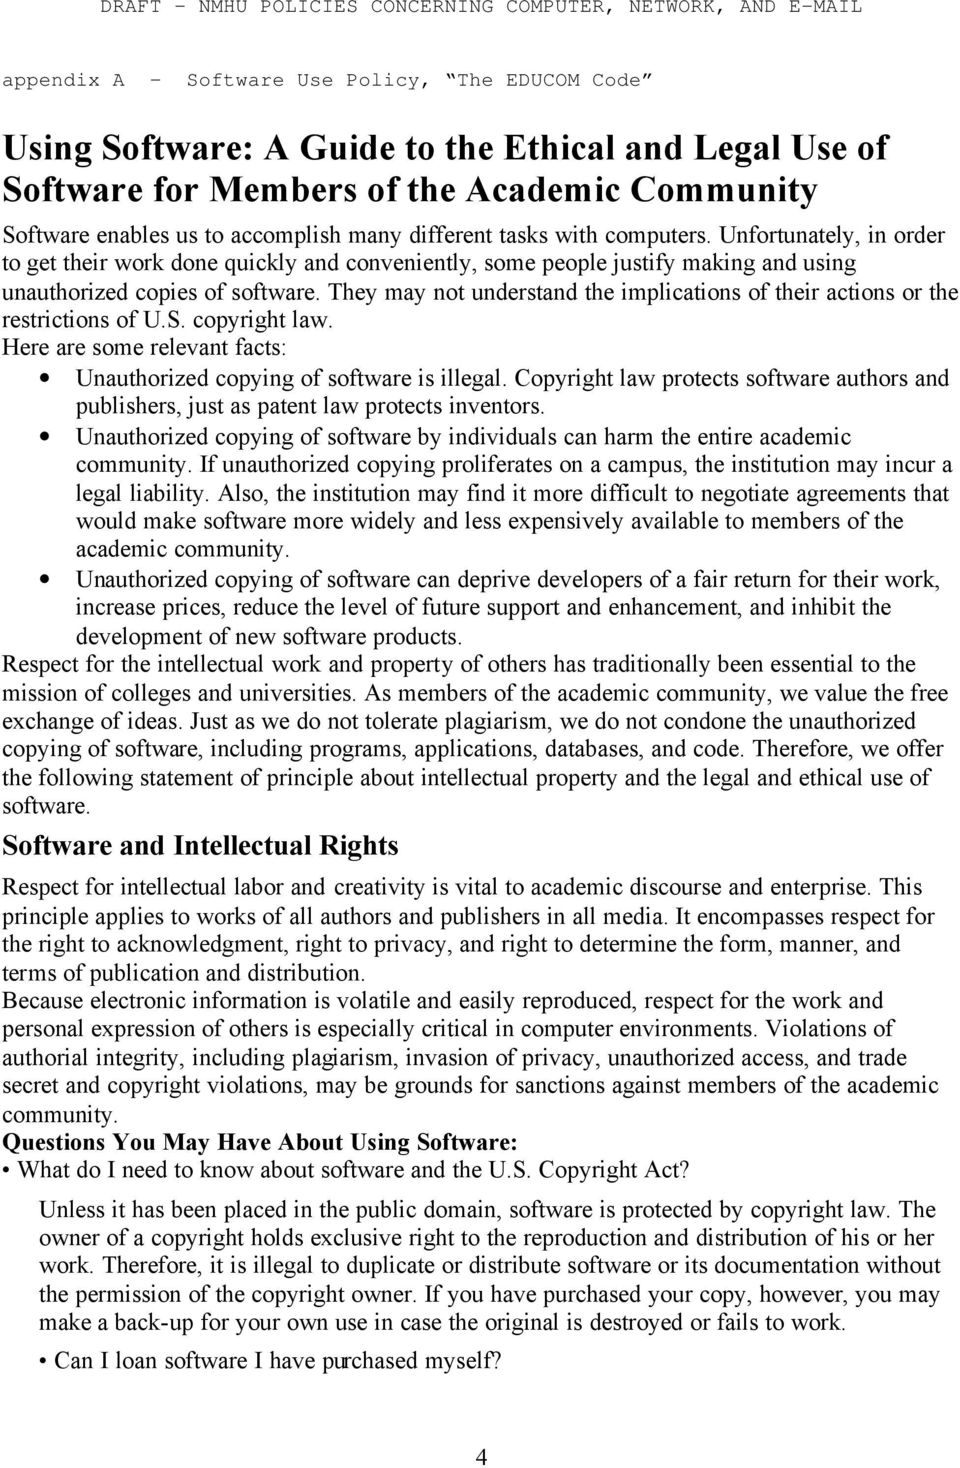 They may not understand the implications of their actions or the restrictions of U.S. copyright law. Here are some relevant facts: Unauthorized copying of software is illegal.